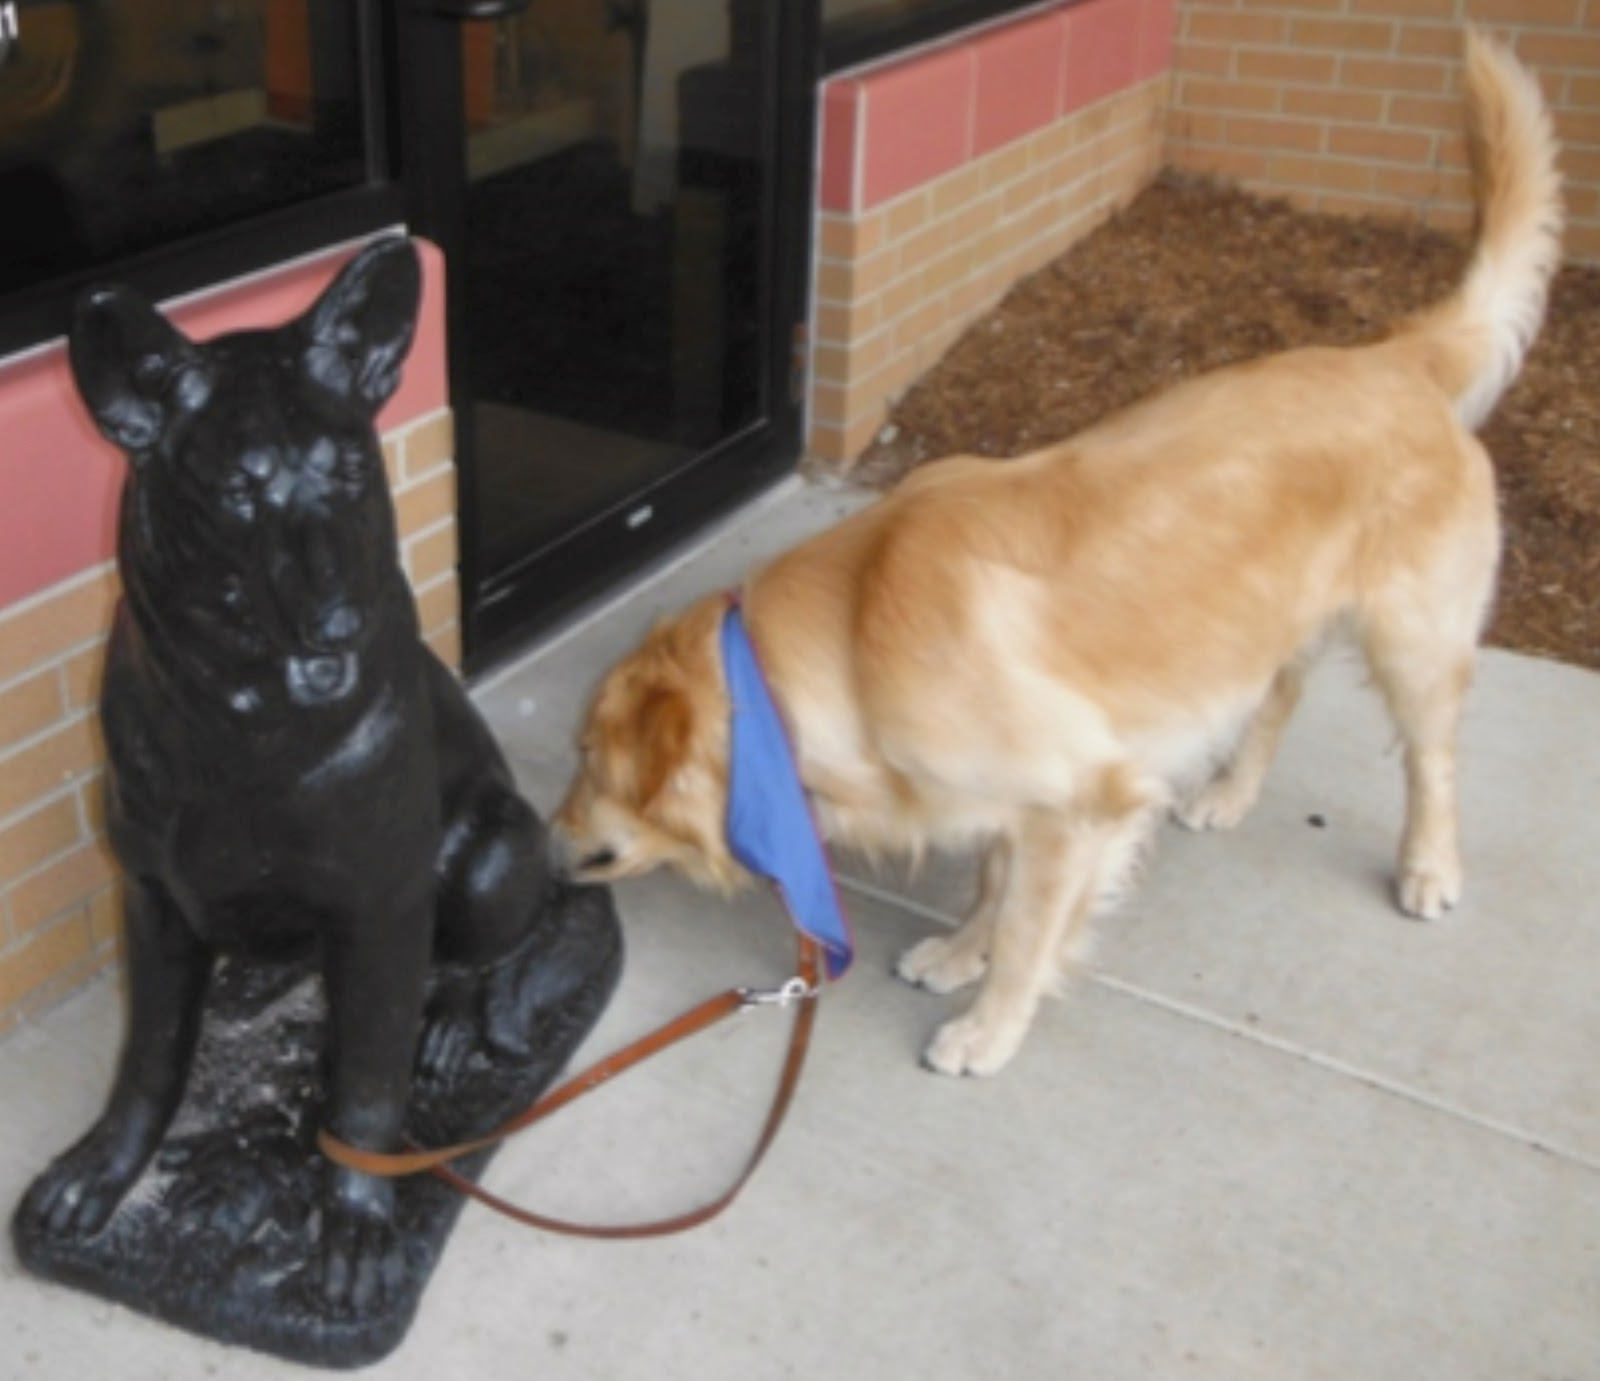 A golden retriever wearing a blue bandana is leashed to a black stature of a sitting german shepherd. The golden is sniffing the rear end of the stature.